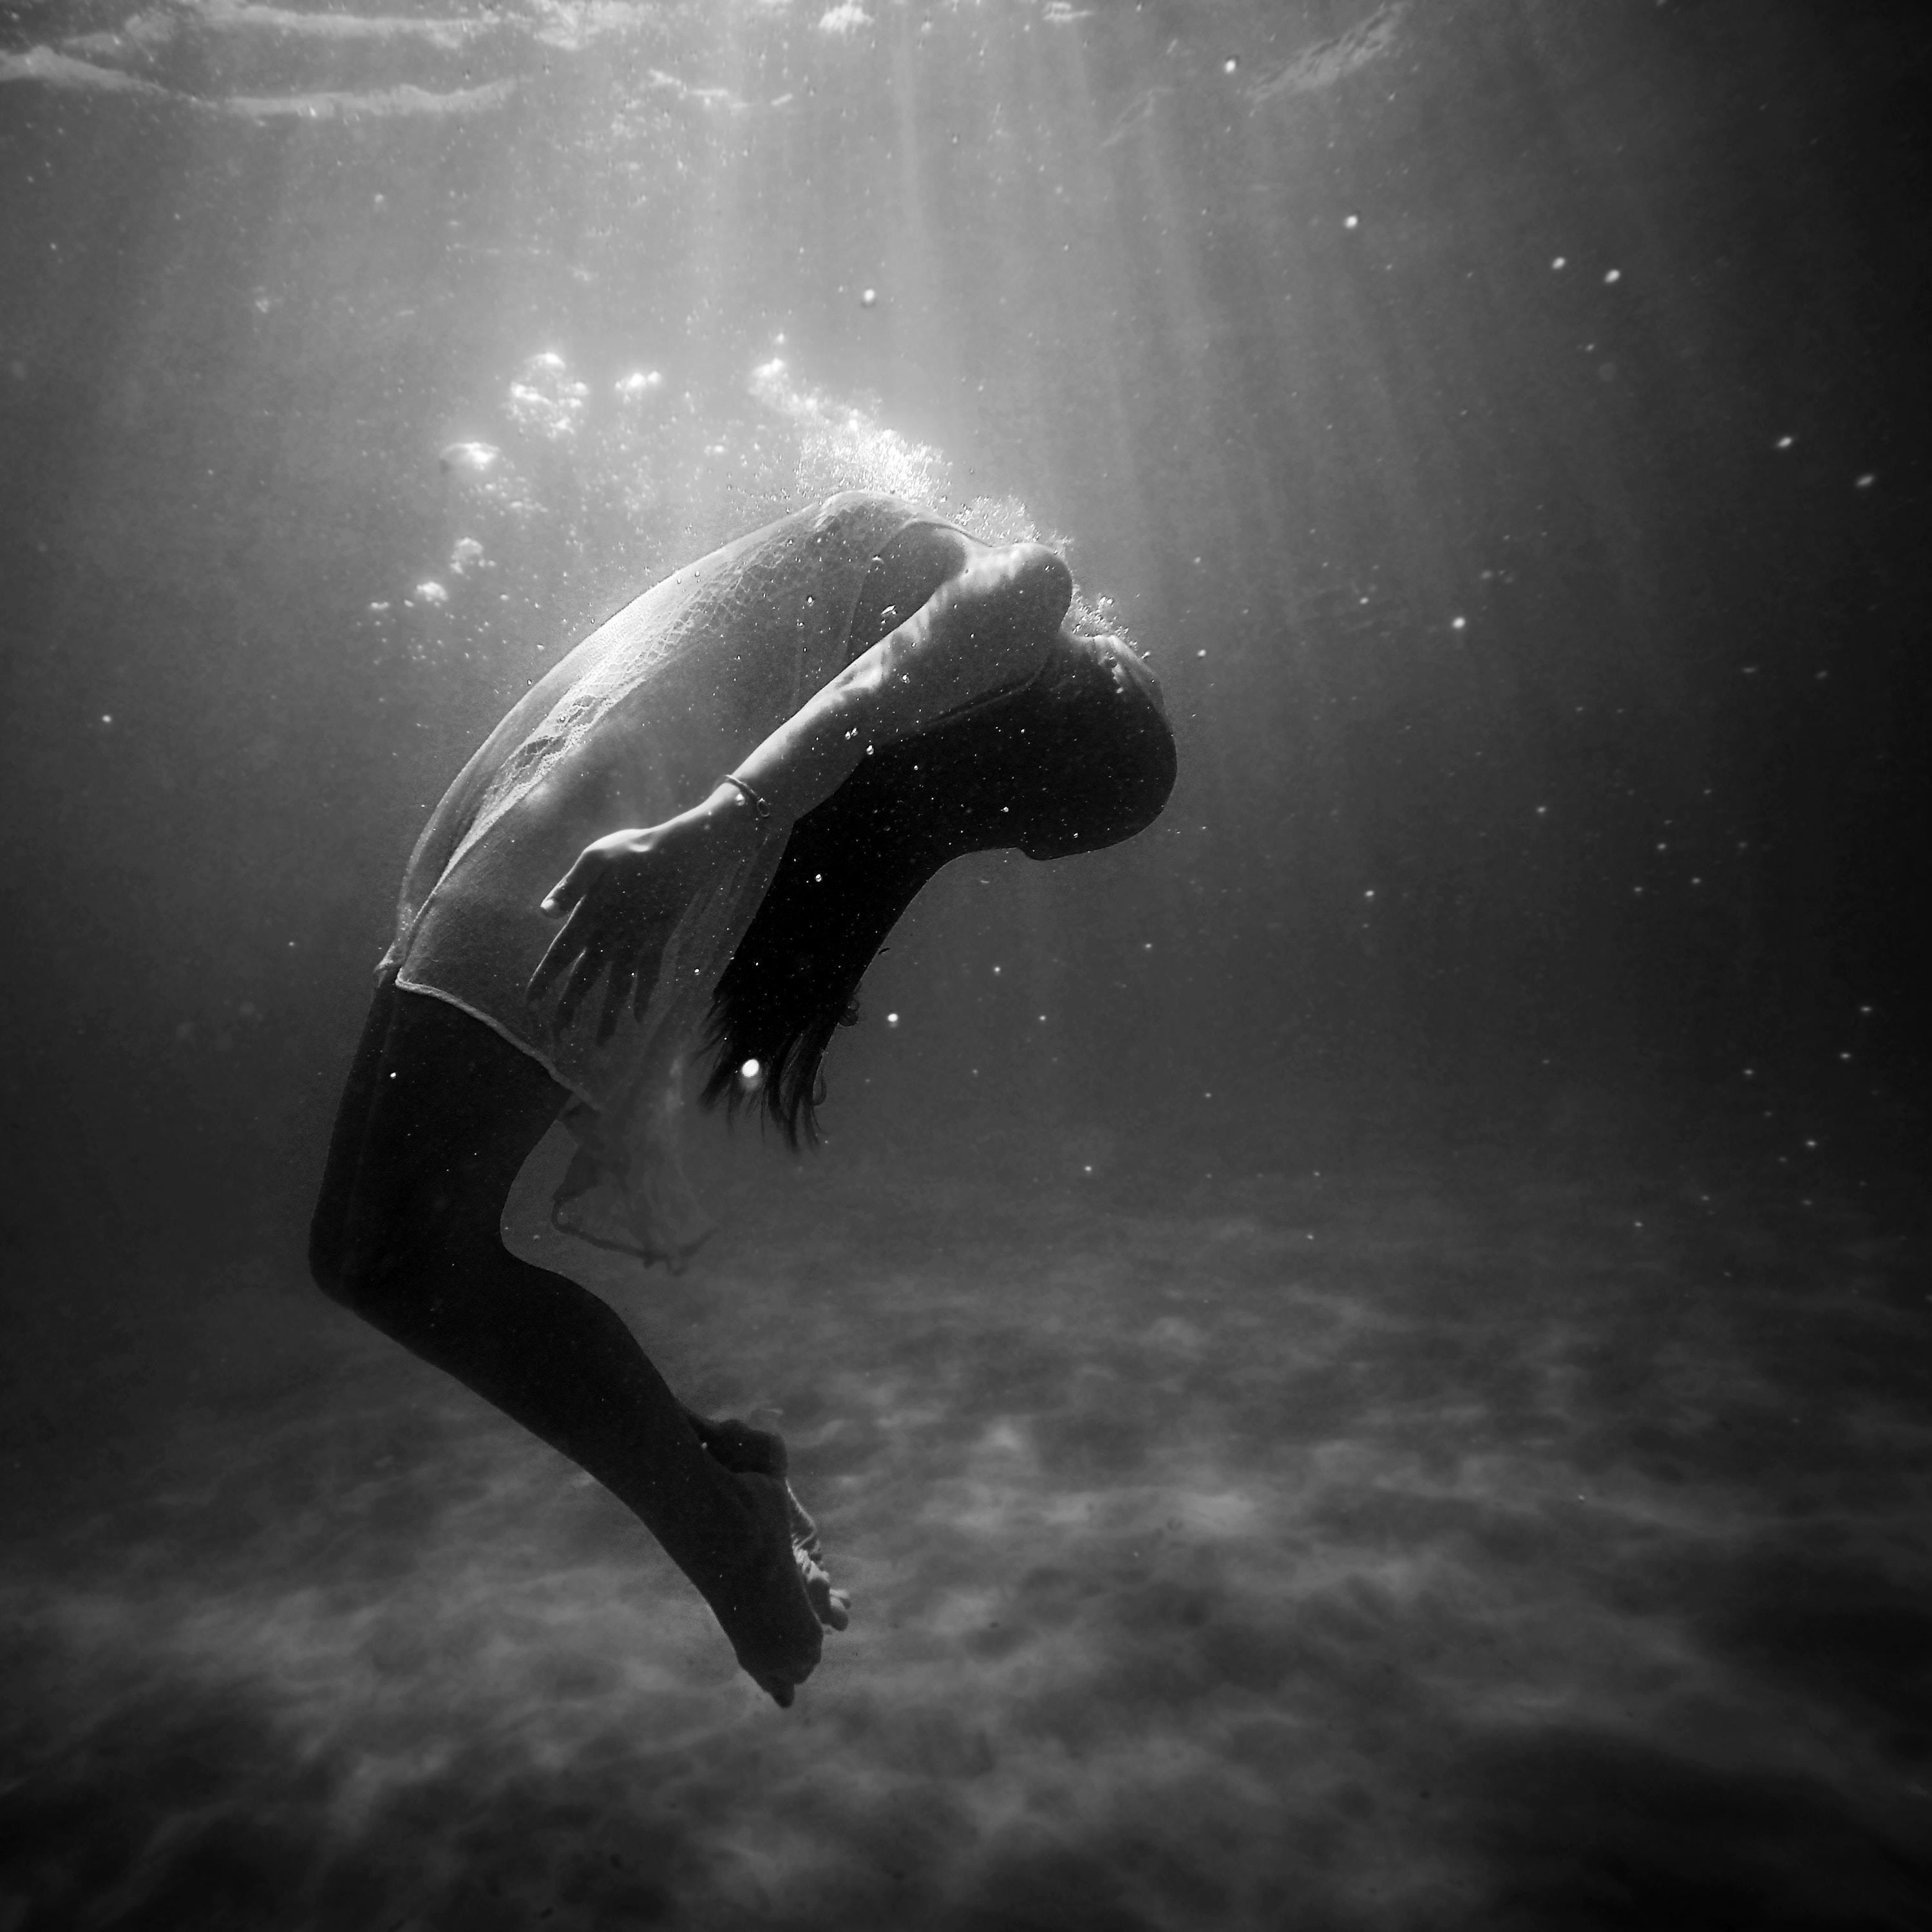 Black and white profile image of woman underwater